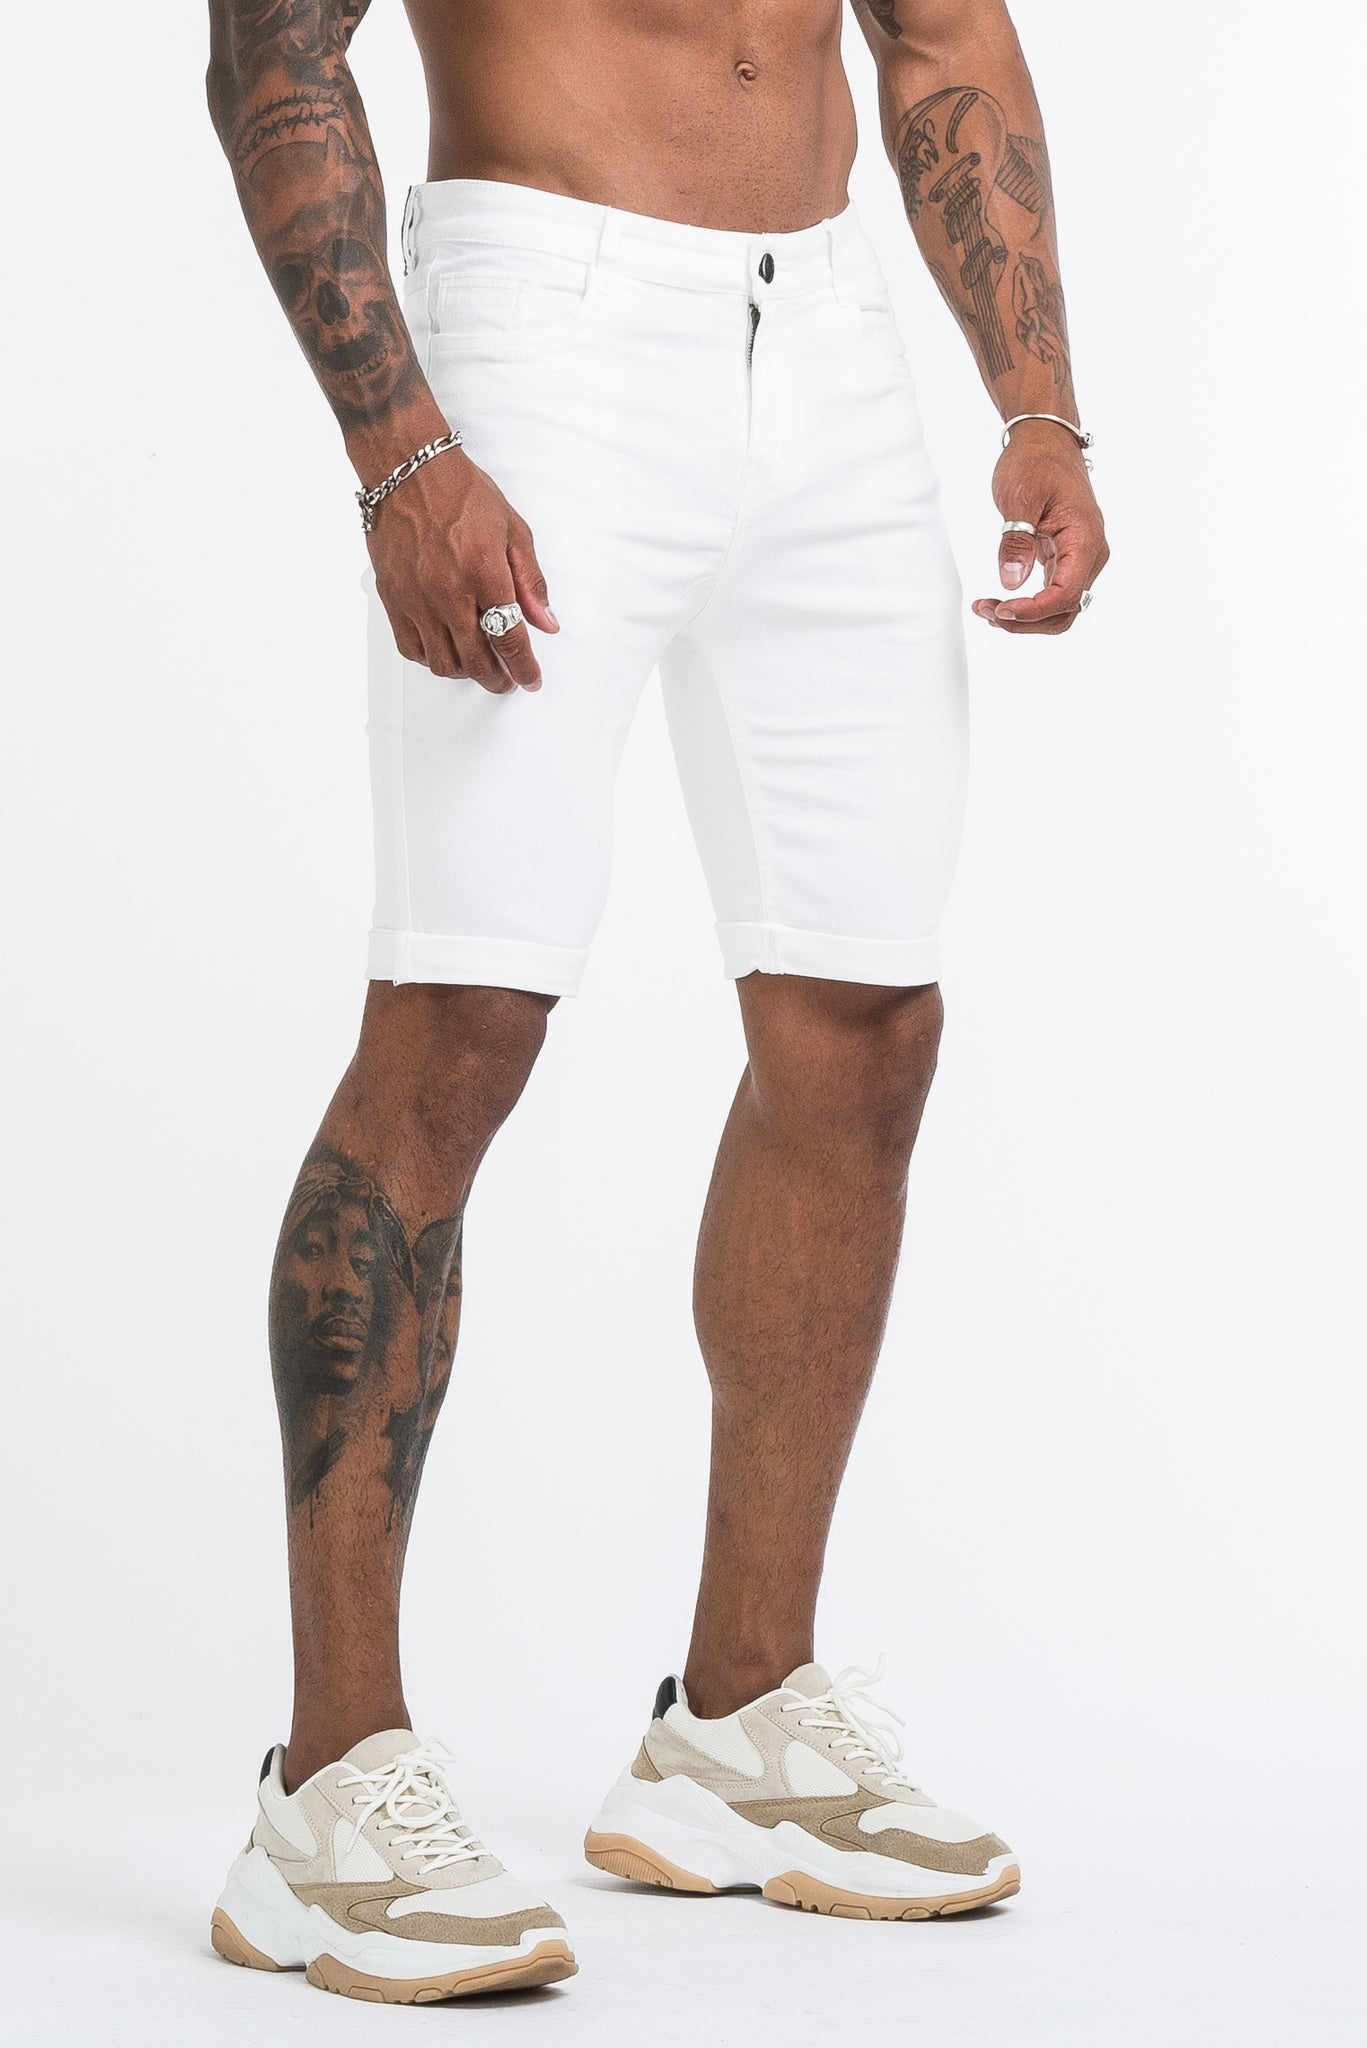 THE SAINT SHORTS - WHITE - ICON. AMSTERDAM